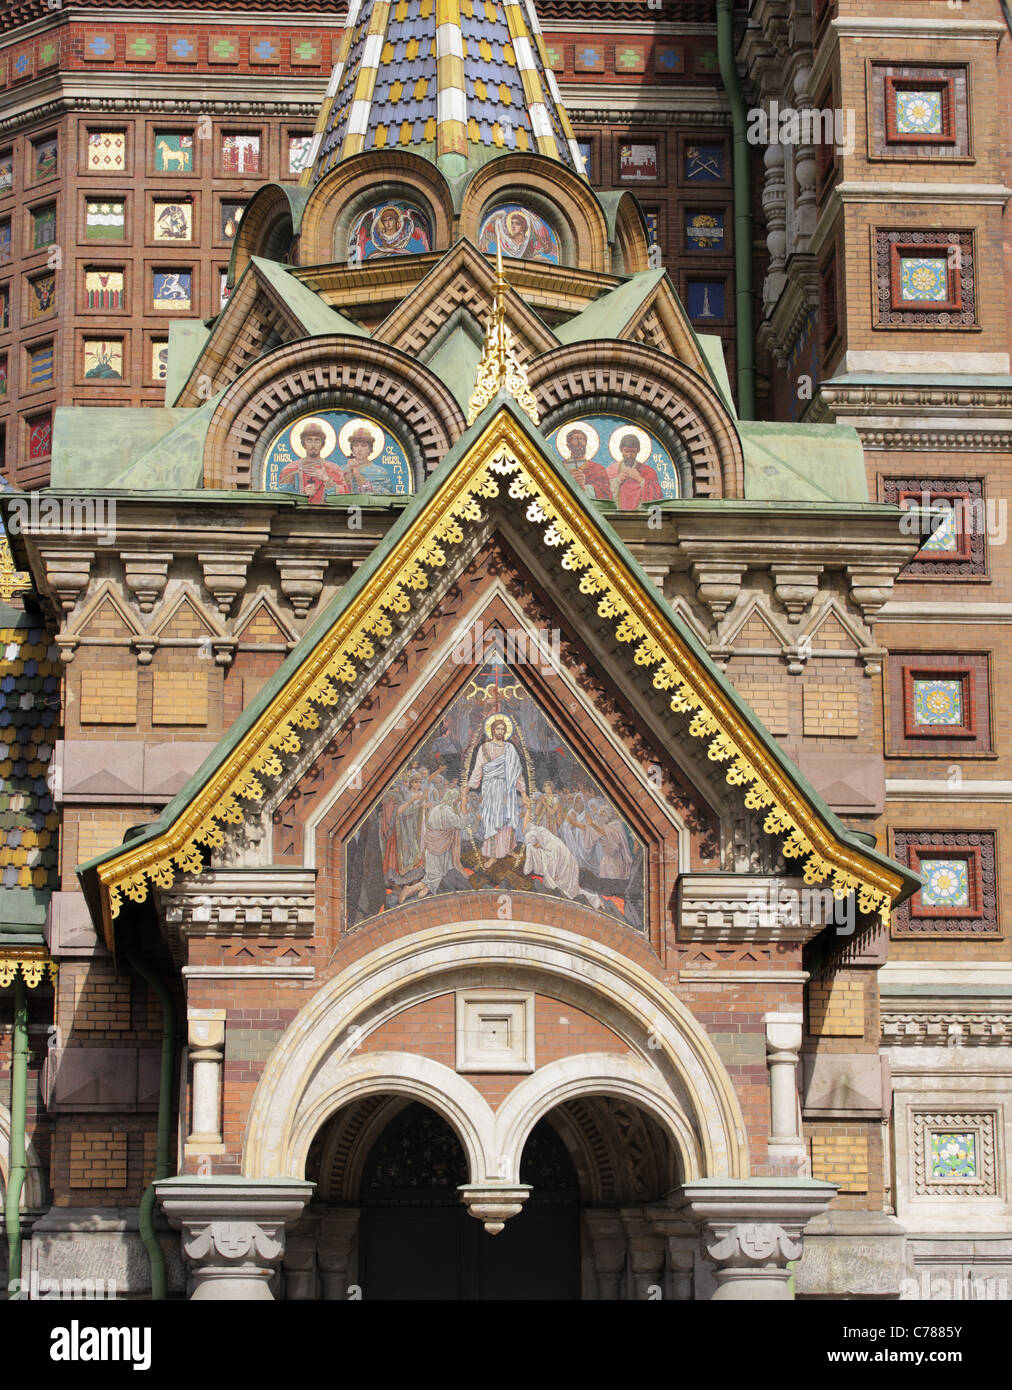 Fragment of Spas na Krovi Cathedral, St. Petersburg, Russia - Stock Image